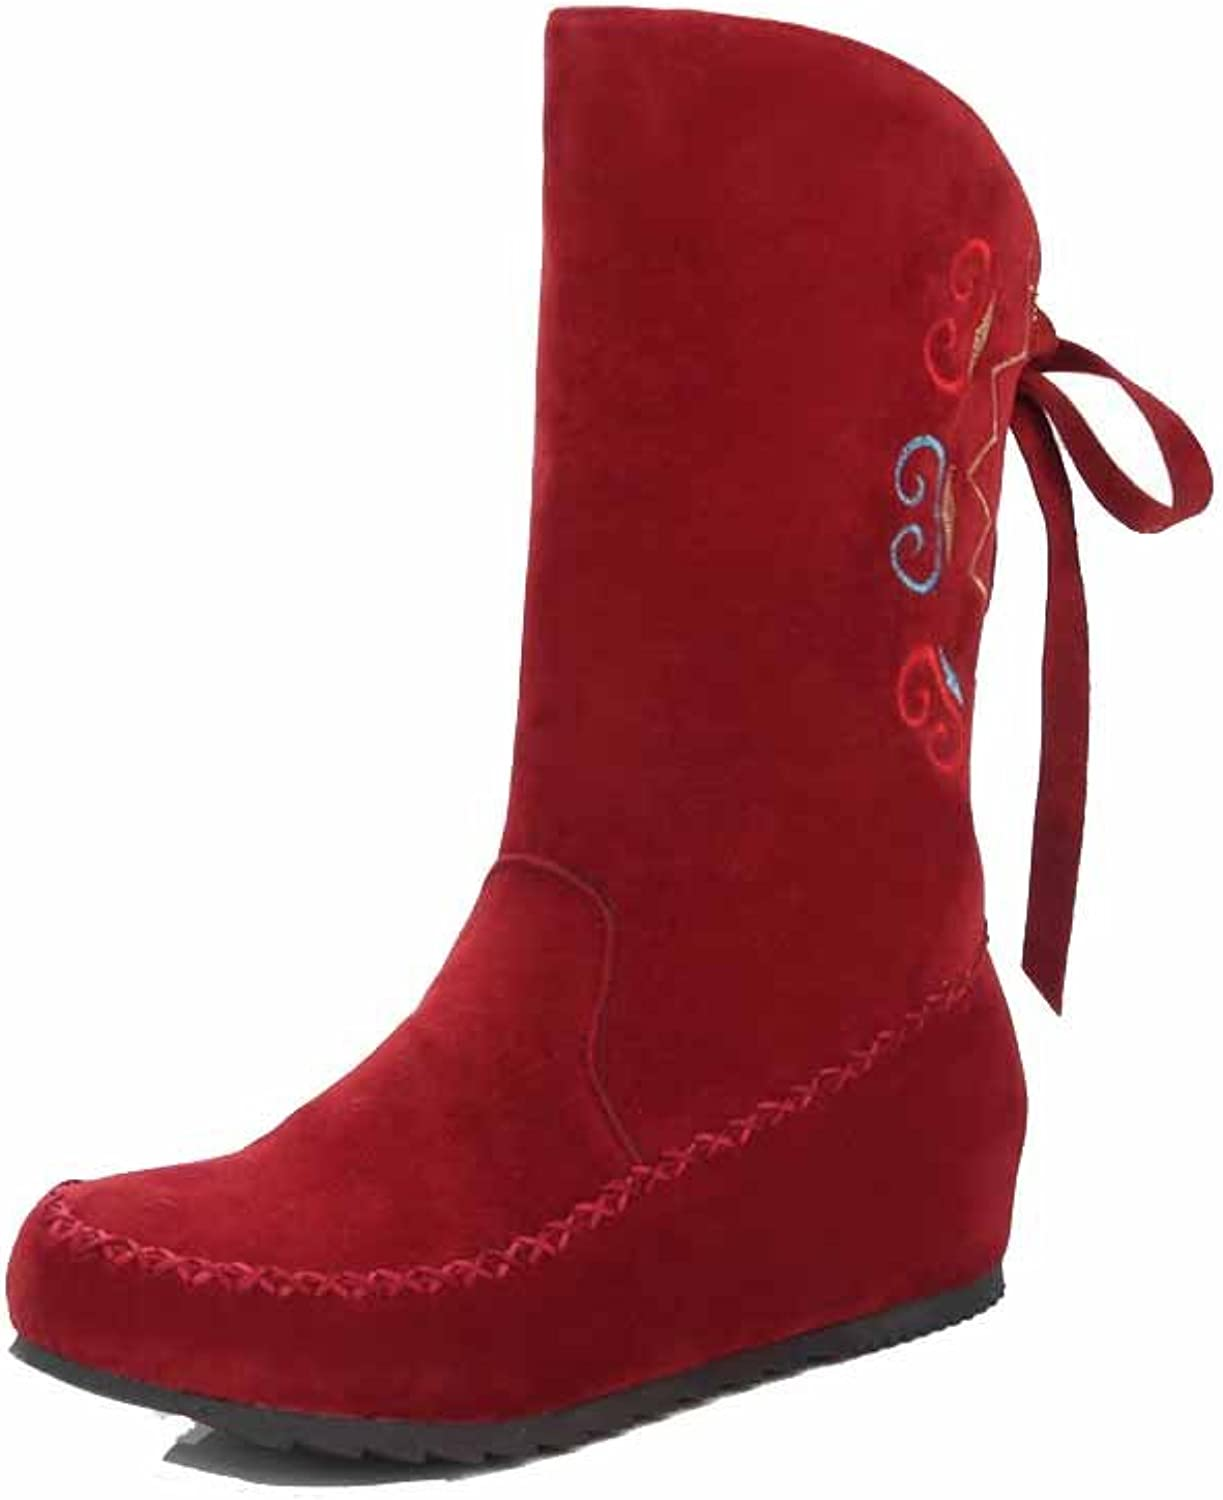 AmoonyFashion Women's Round Closed Toe Mid Top Low Heels Assorted color Frosted Boots